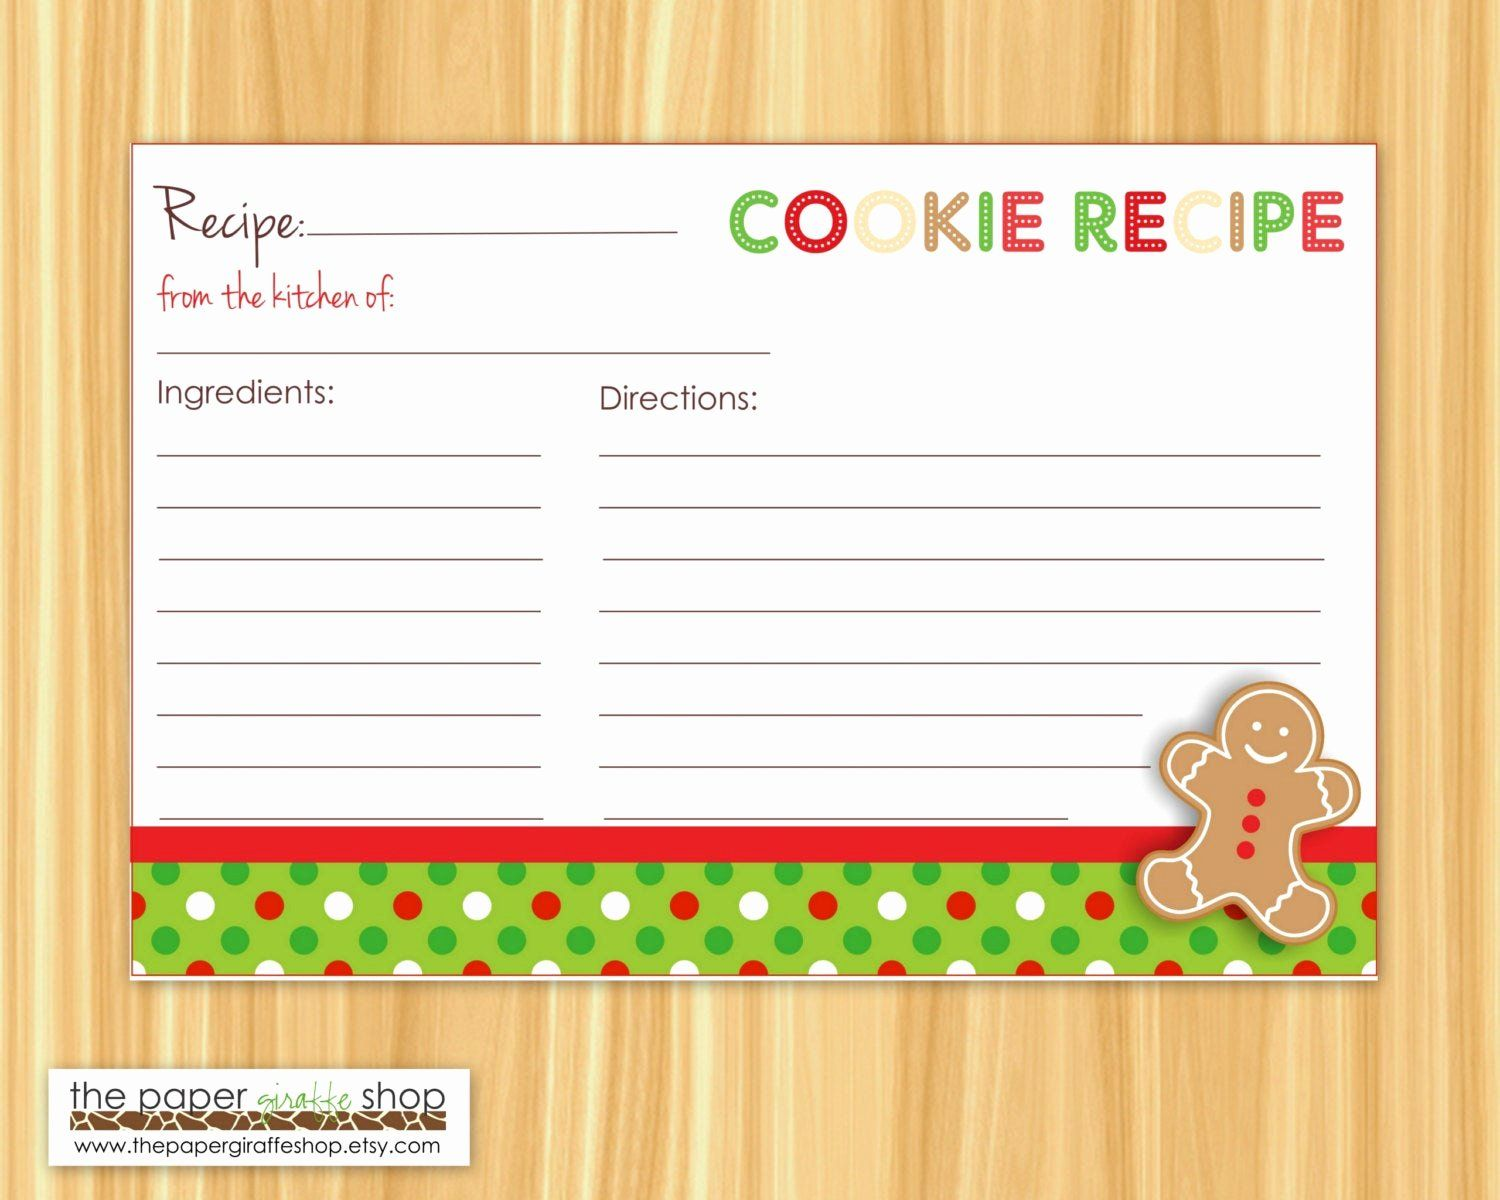 Christmas Recipe Card Template Inspirational Editable Cookie Exchange Party Recipe Cards Editable And In 2020 Recipe Cards Template Christmas Recipe Cards Recipe Cards